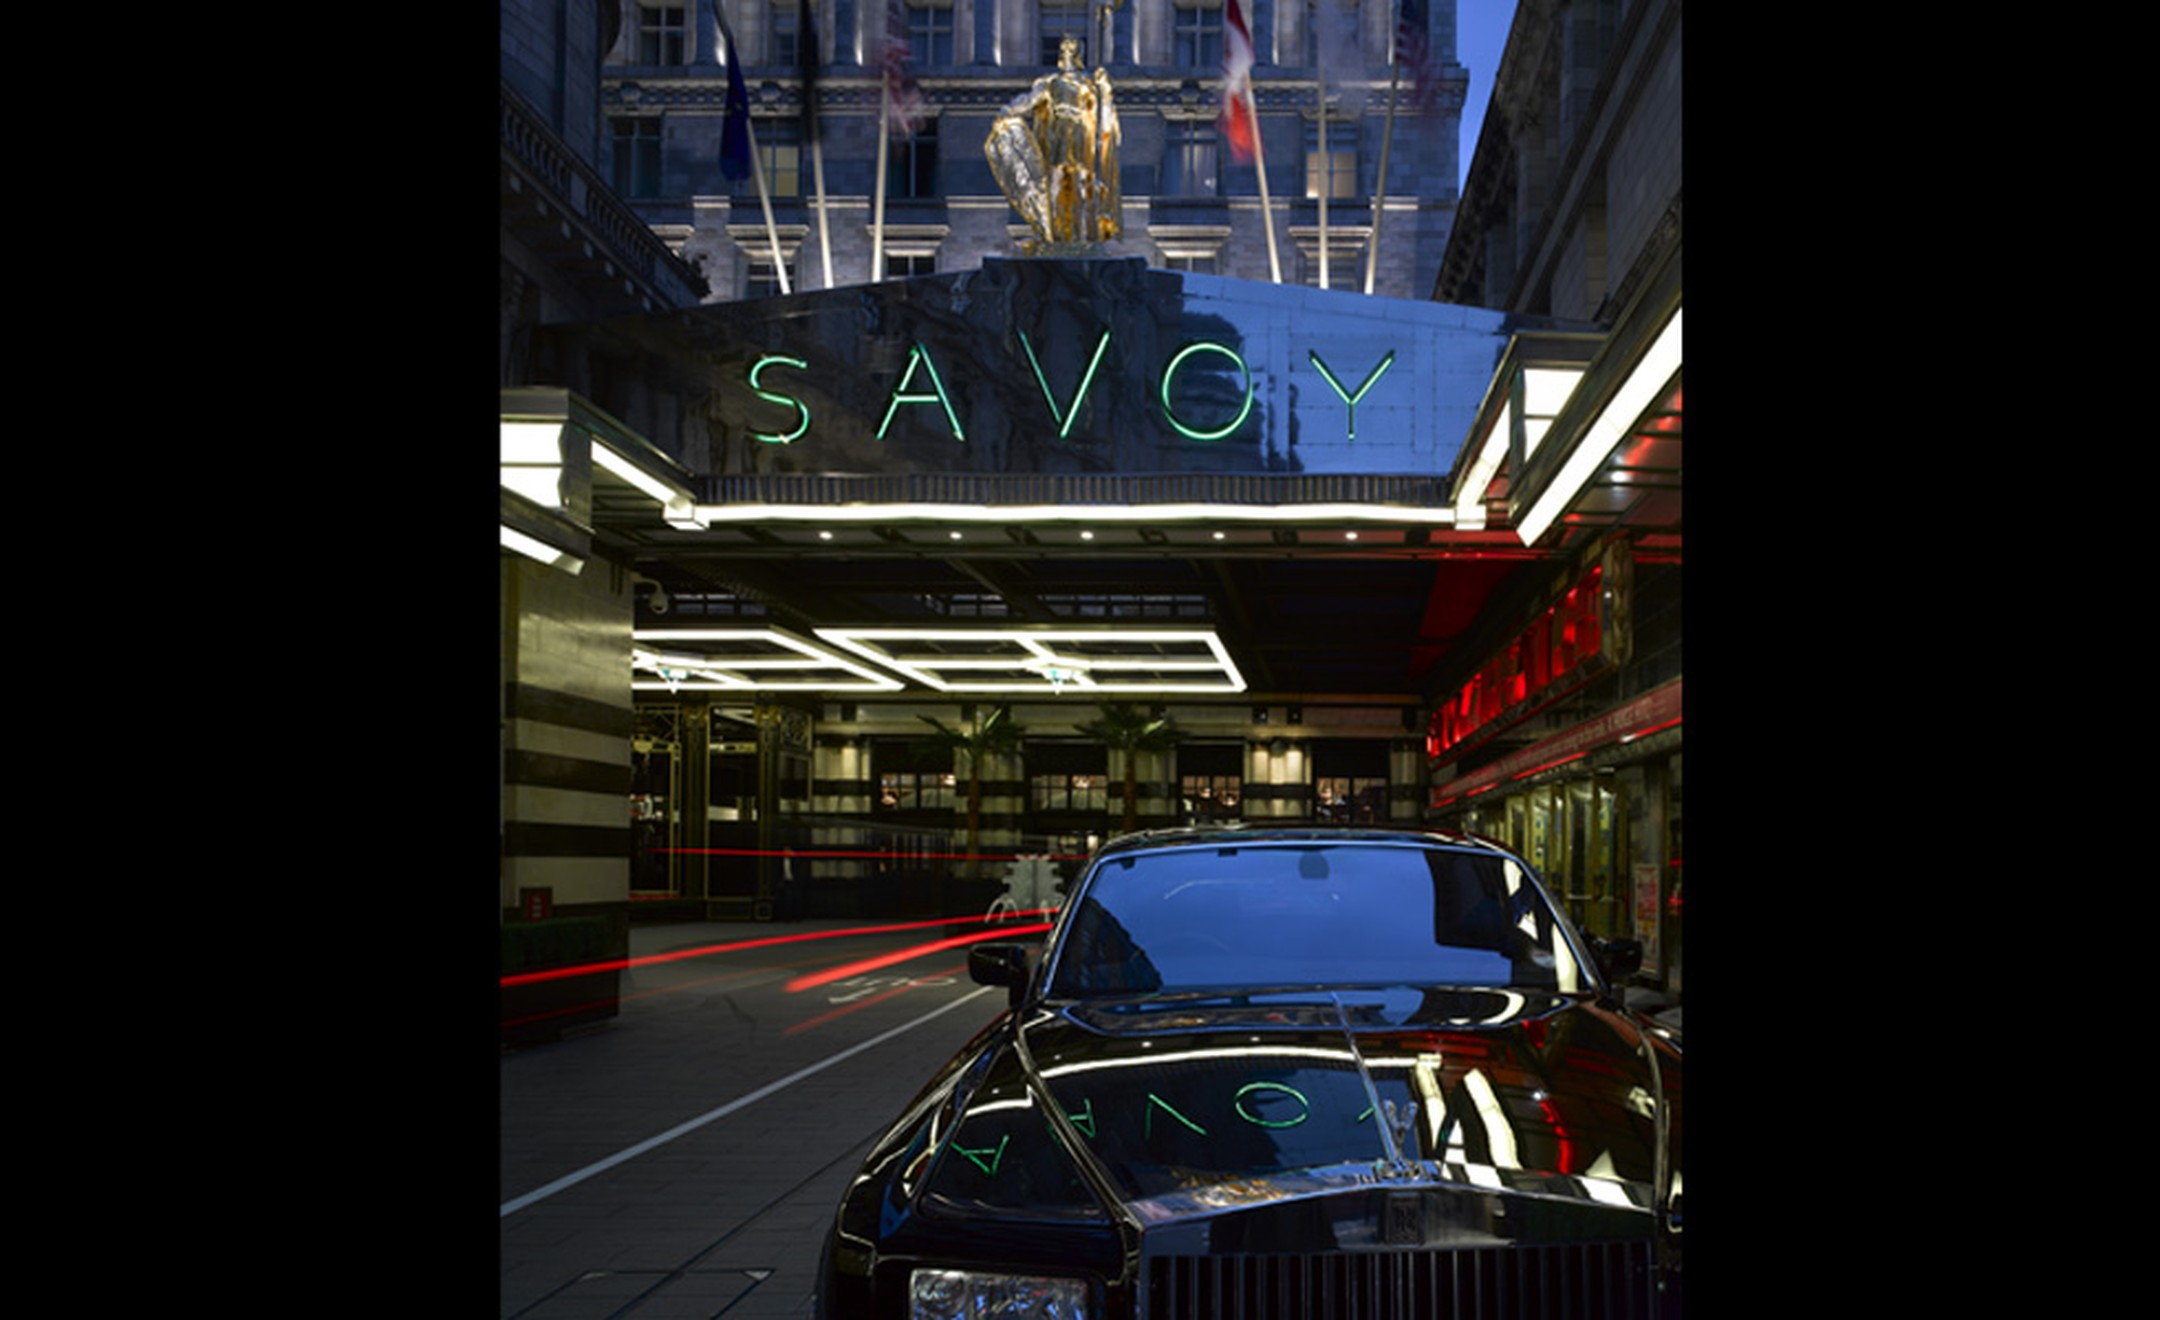 The forecourt of the refurbished Savoy Hotel in London with its iconic neon sign